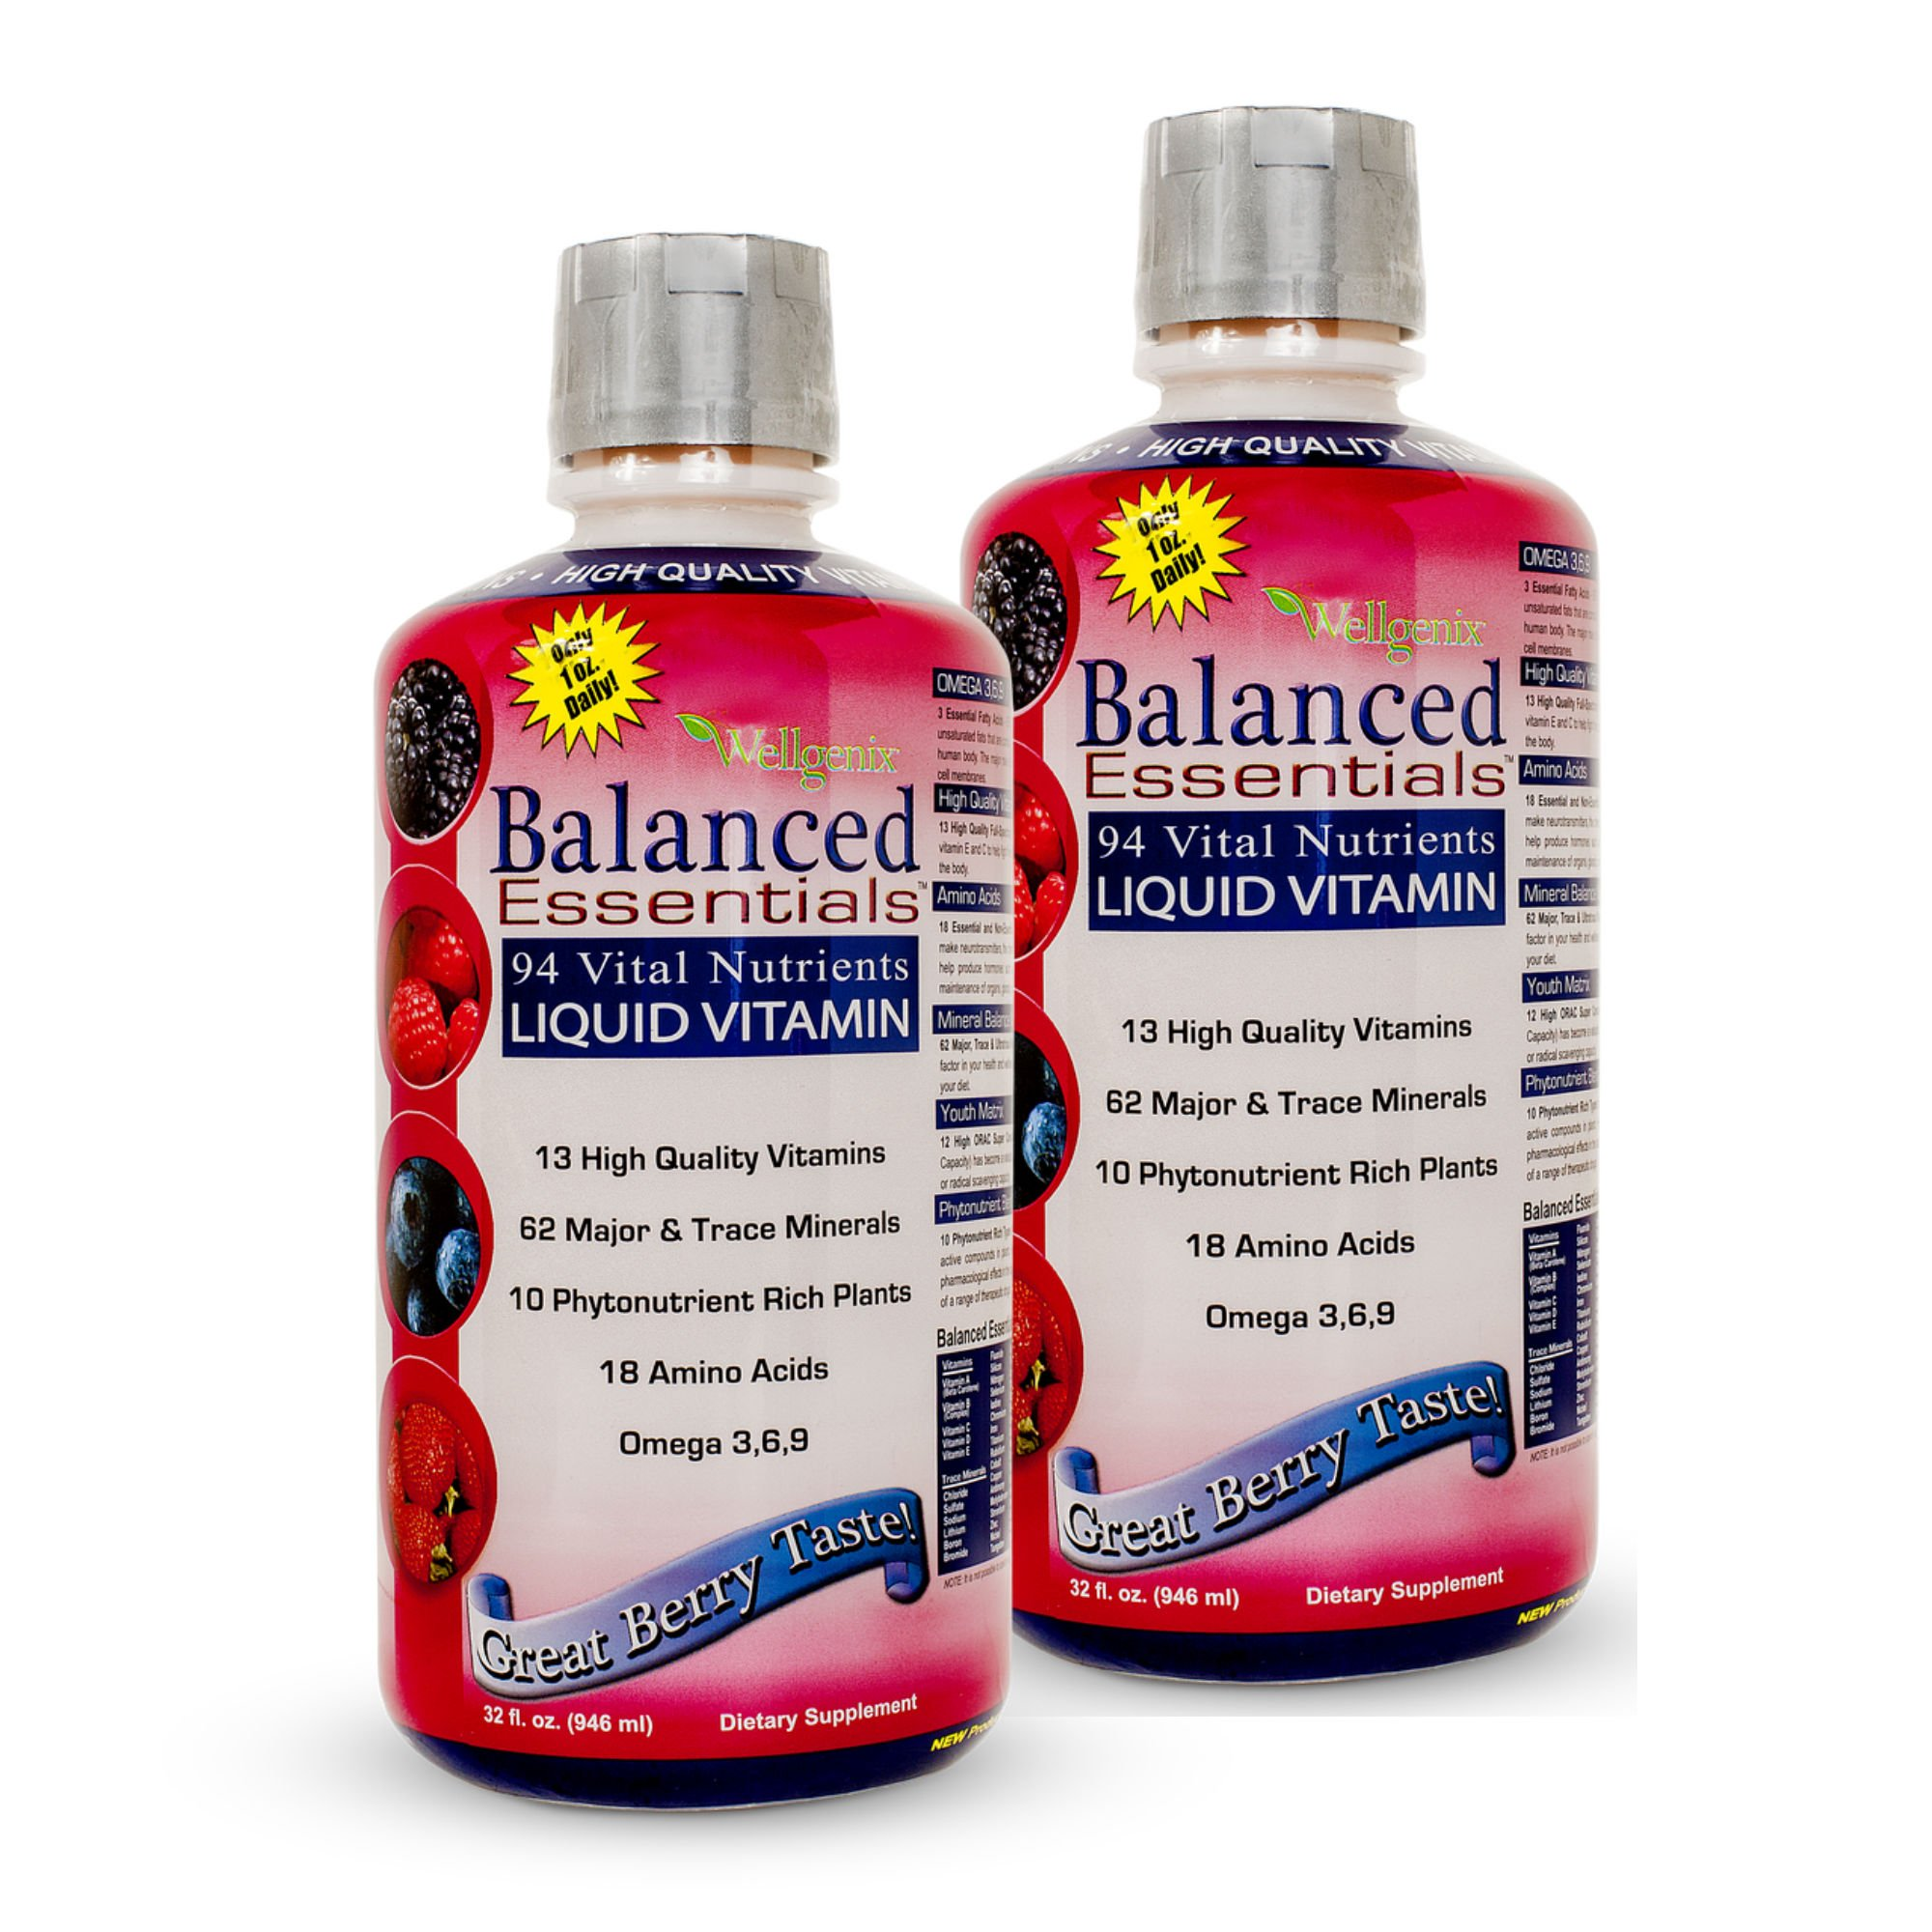 Wellgenix WGXBALLESS32X2 Balanced Essentials Liquid Minerals and Vitamins/Multivitamins Very Berry 32 oz., 2 Bottles (Pack of 2)